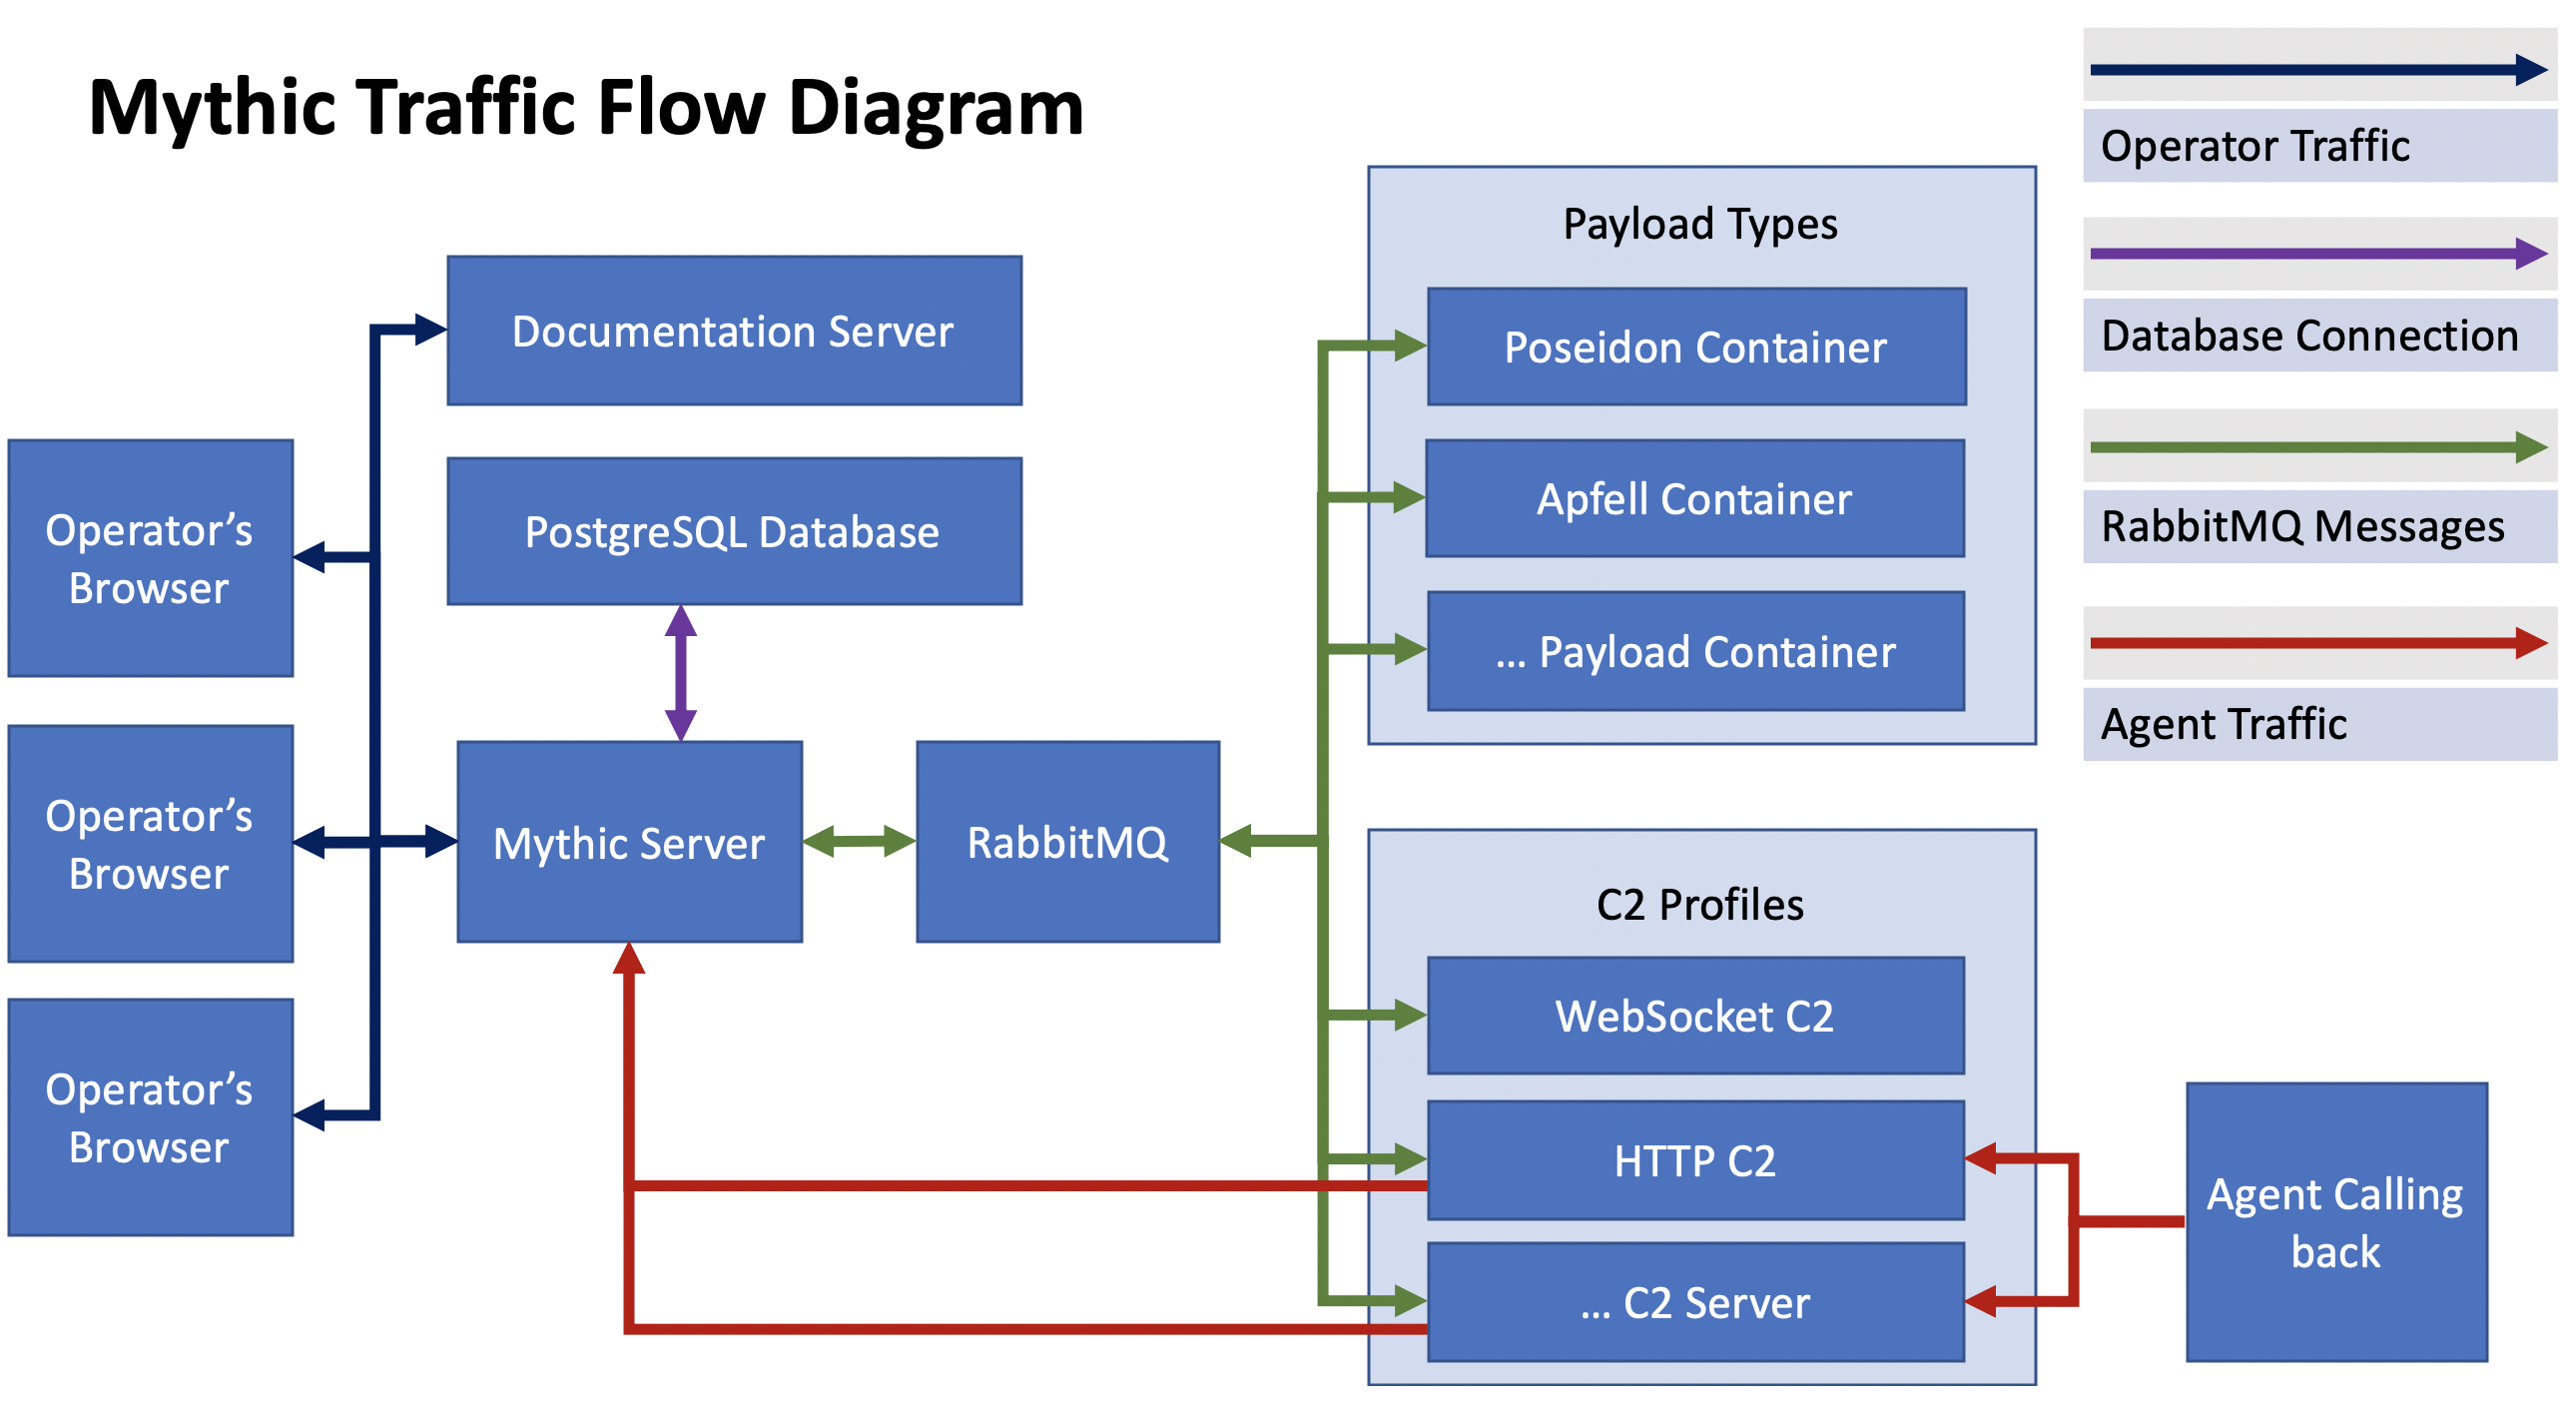 Mythic Traffic Flow Diagram